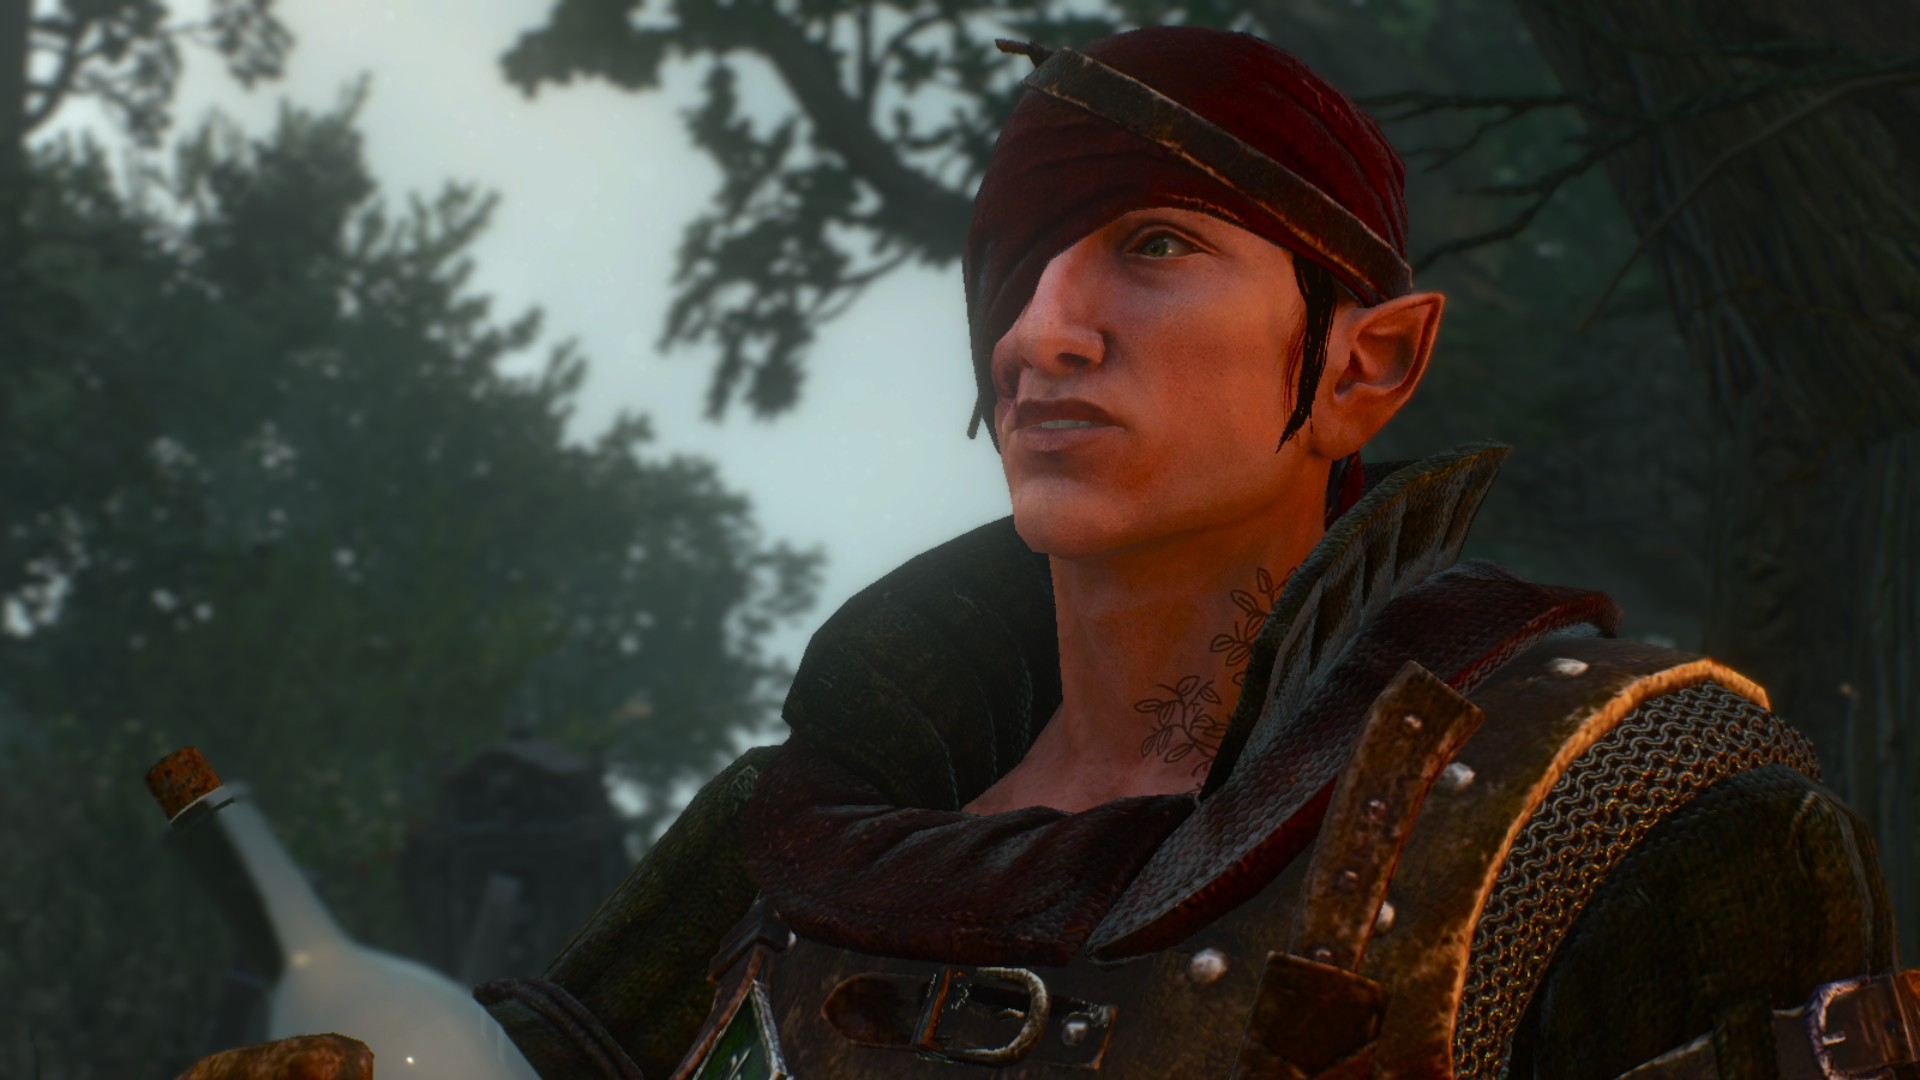 2 Or 3 Things I Know: Swap Characters To Iorveth (or Roche) At The Witcher 3